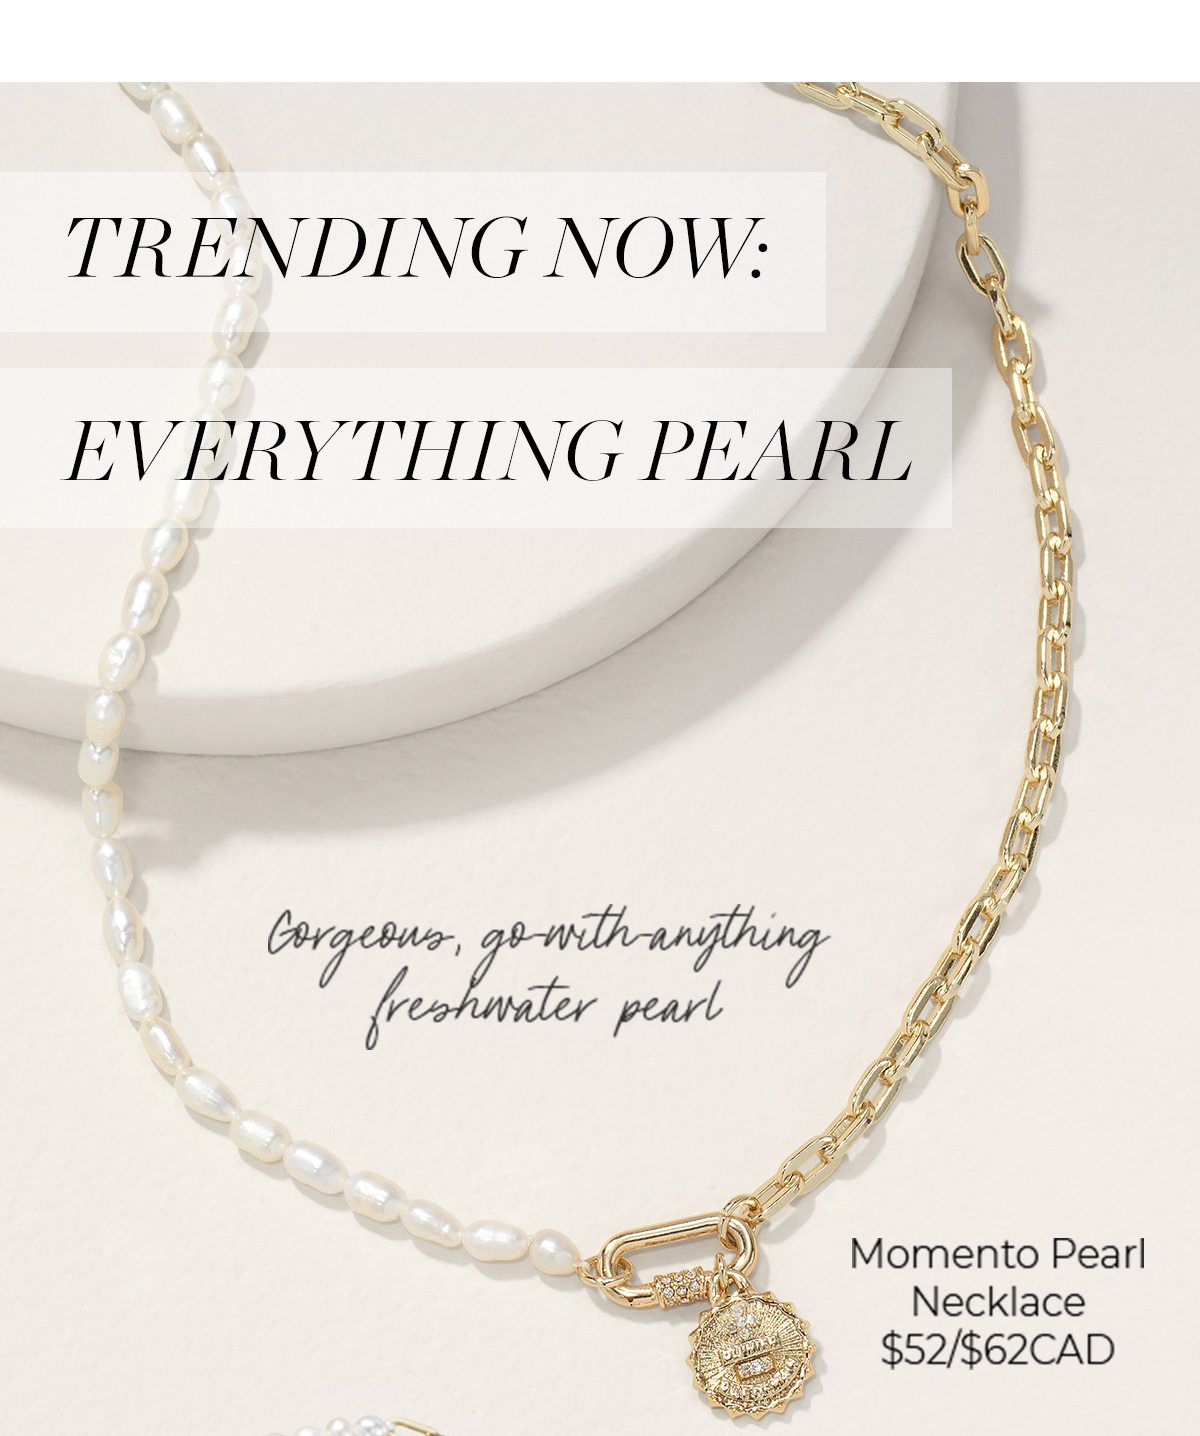 Trending now: Everything Pearl: Moment Pearl Necklace